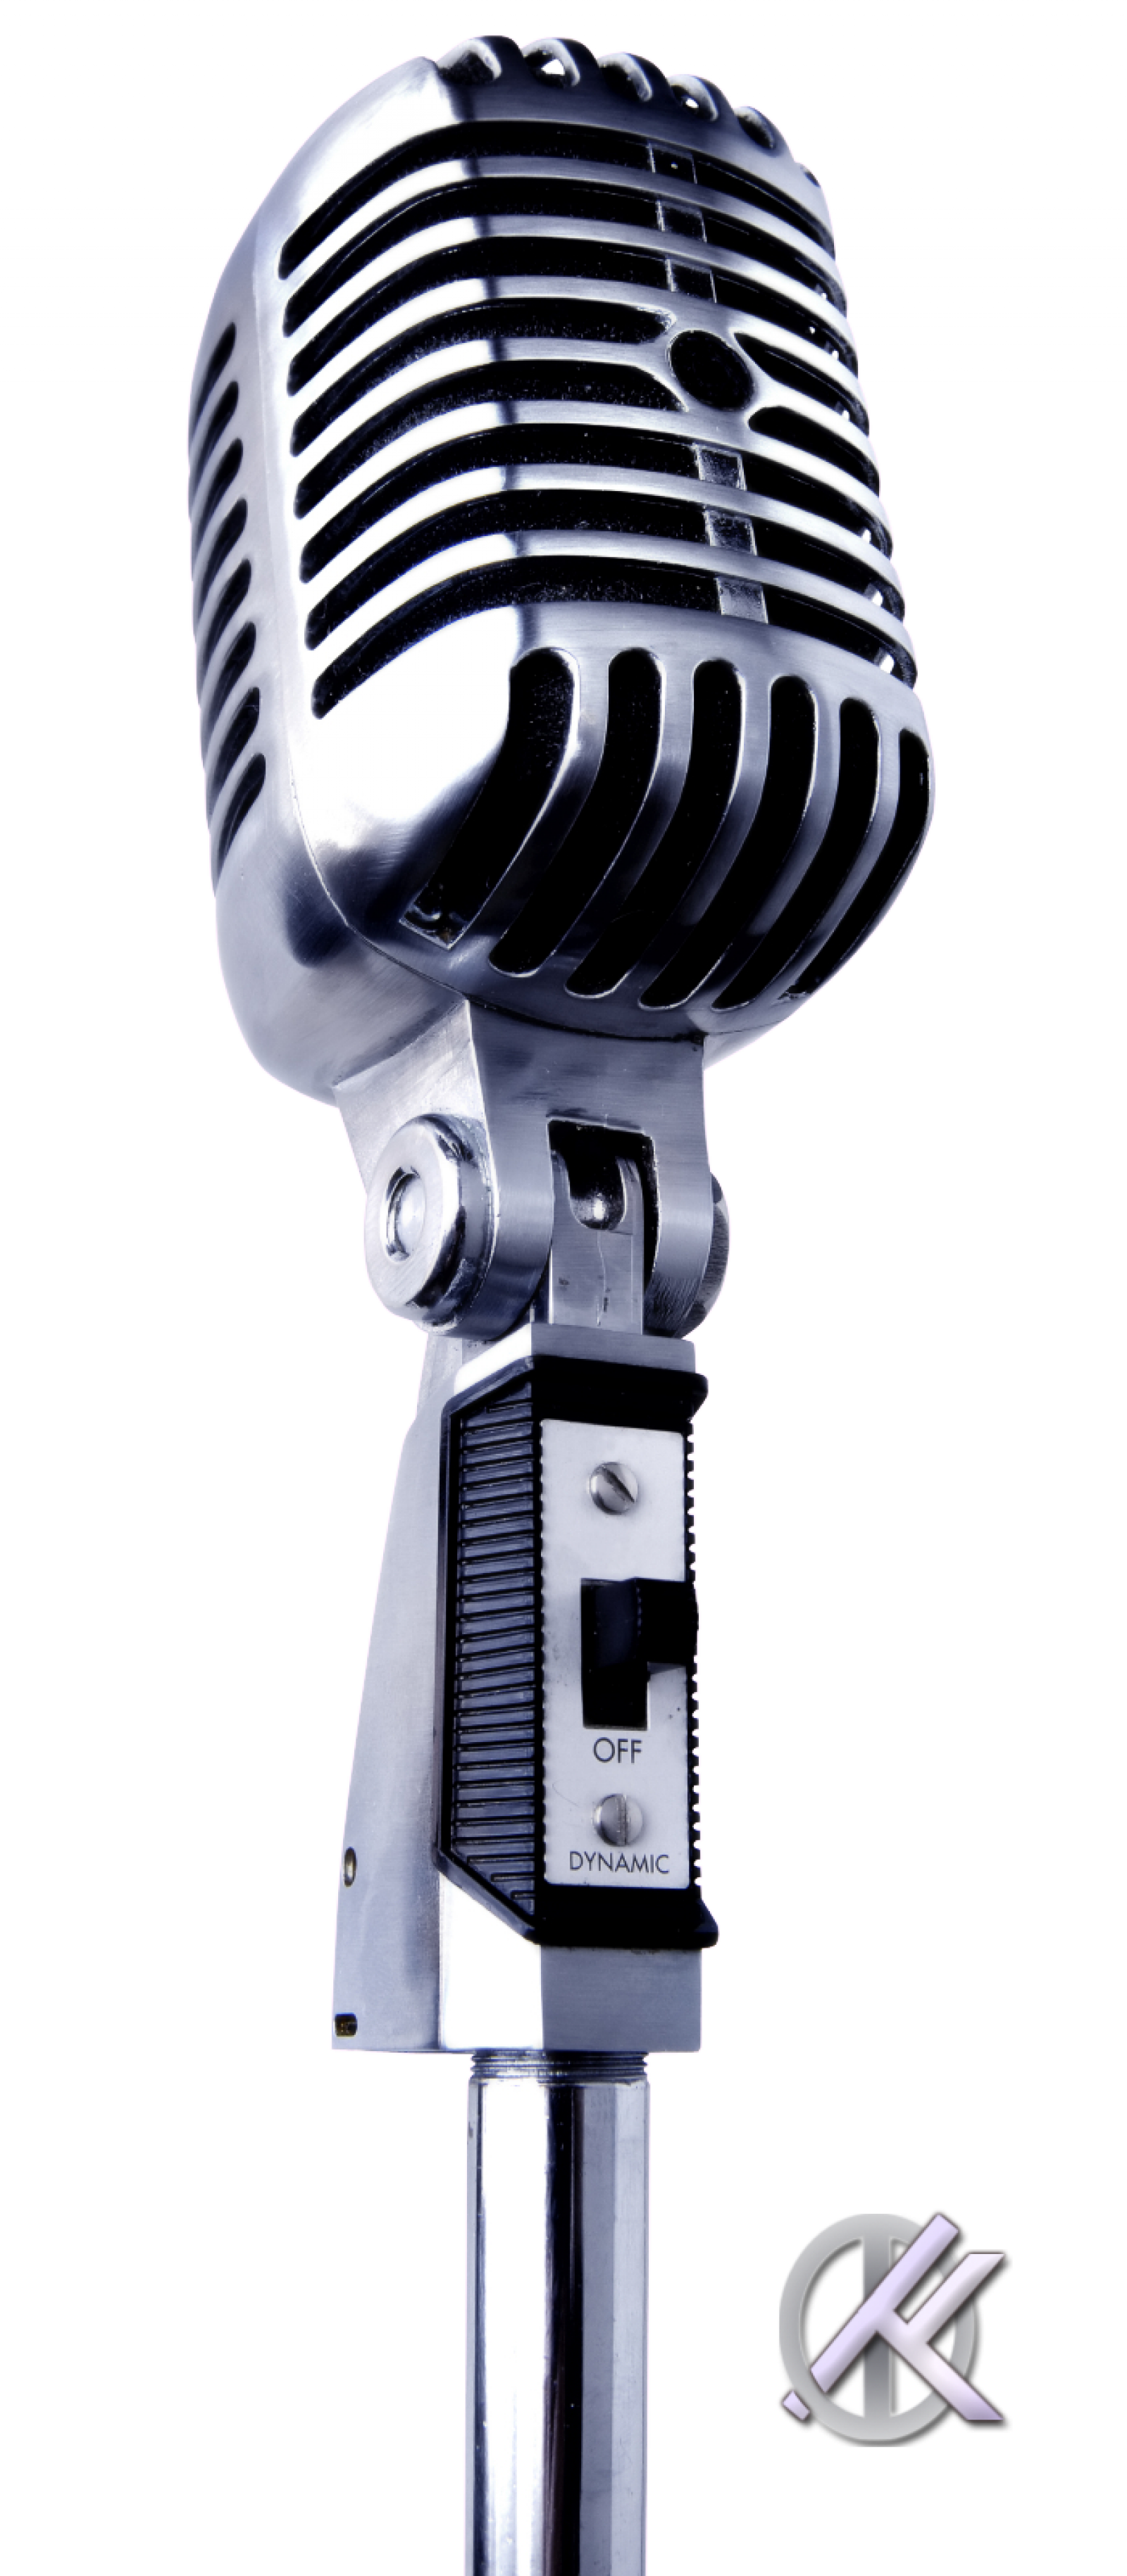 Microphone Png image #19977